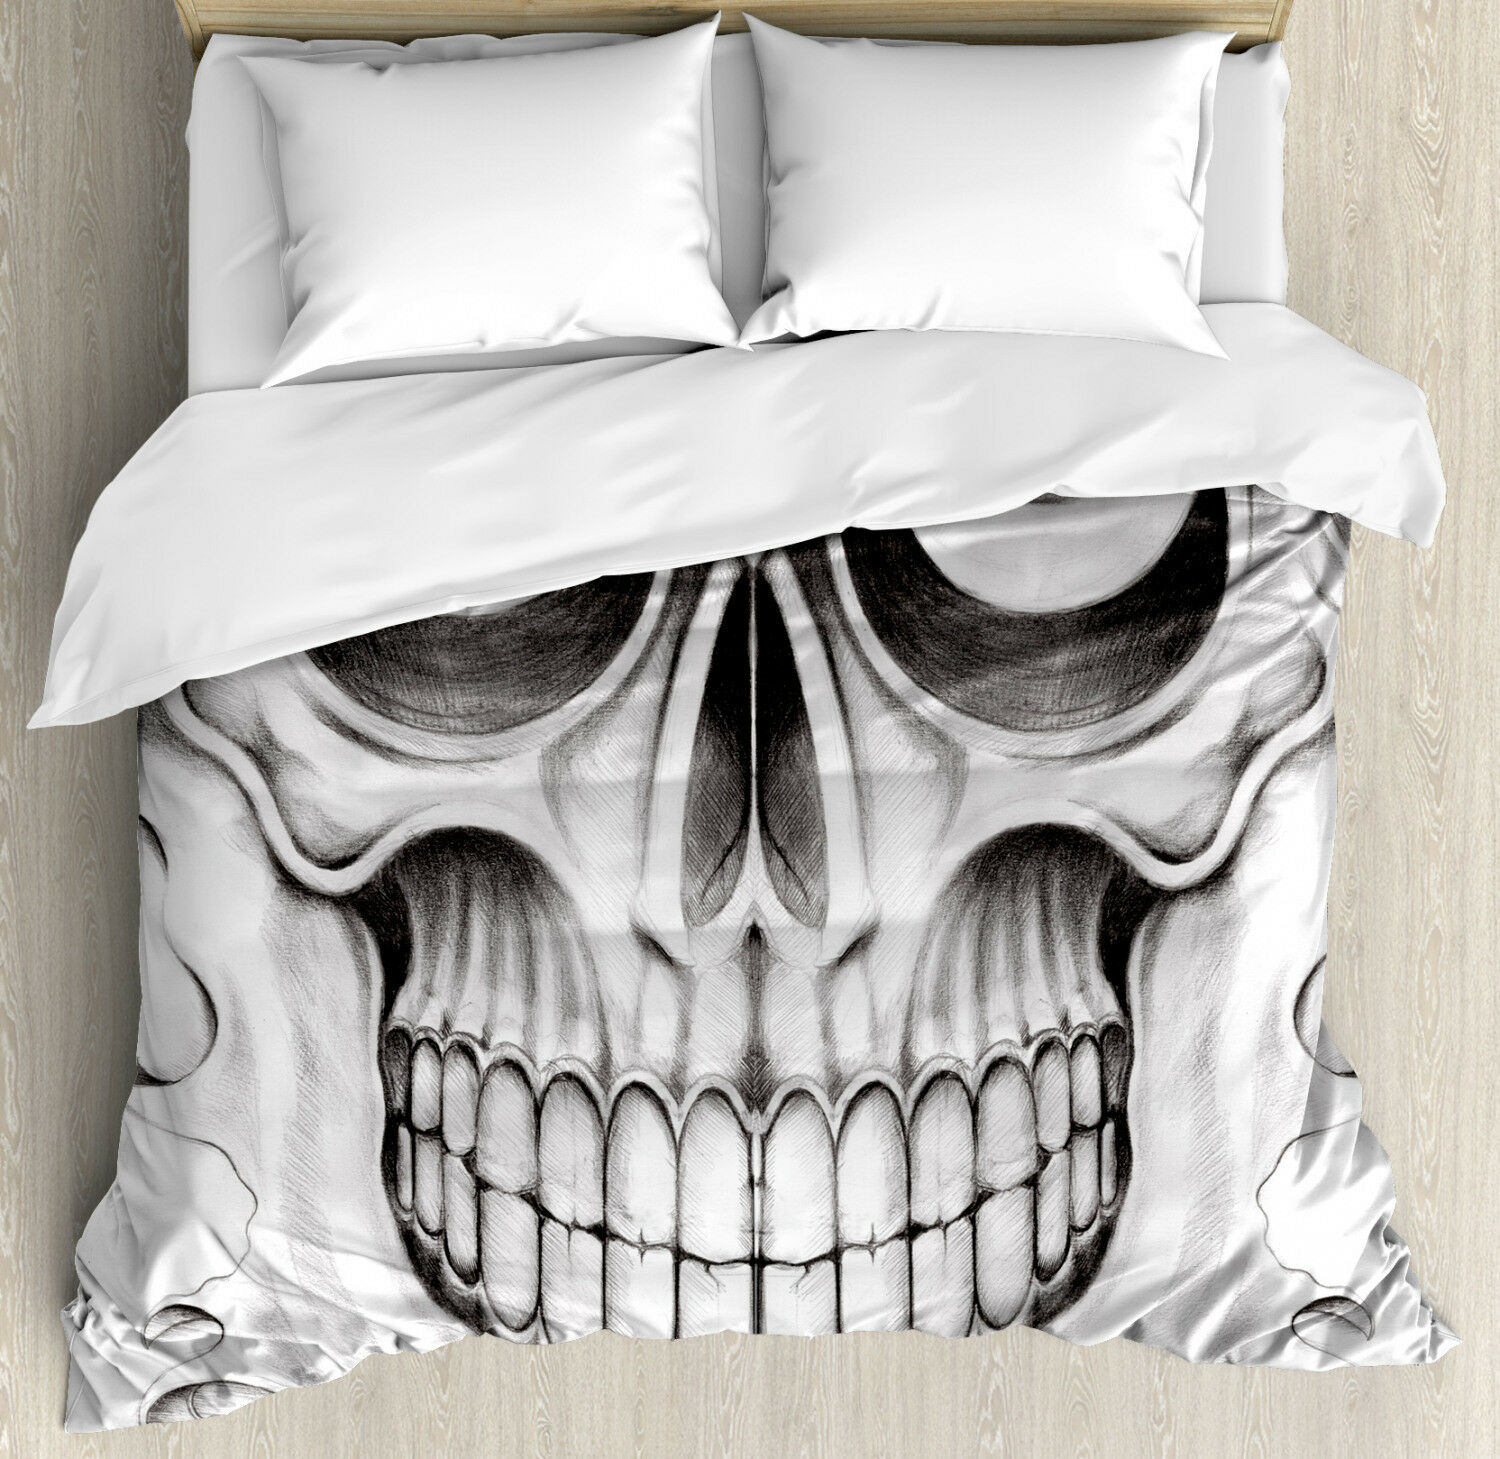 Celebration Duvet Coverset with Pillow Shams Skull Face Angry Print